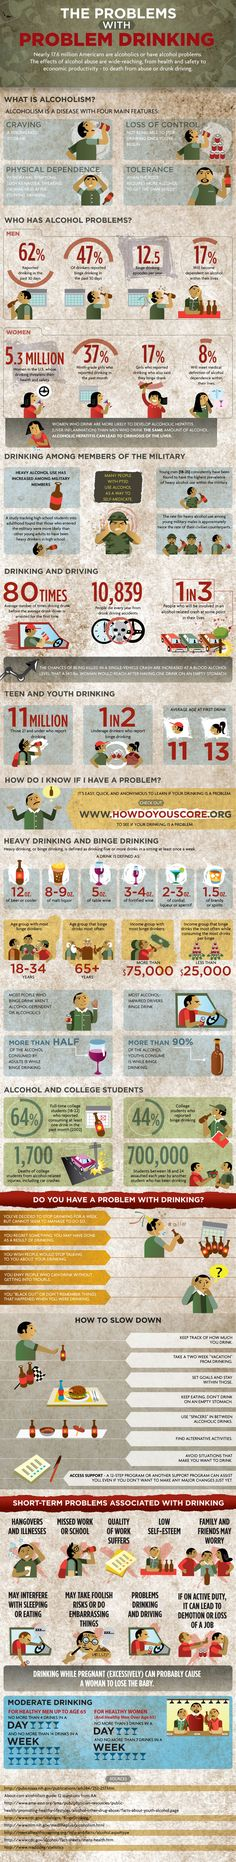 INFOGRAPHIC: Problems with Alcohol